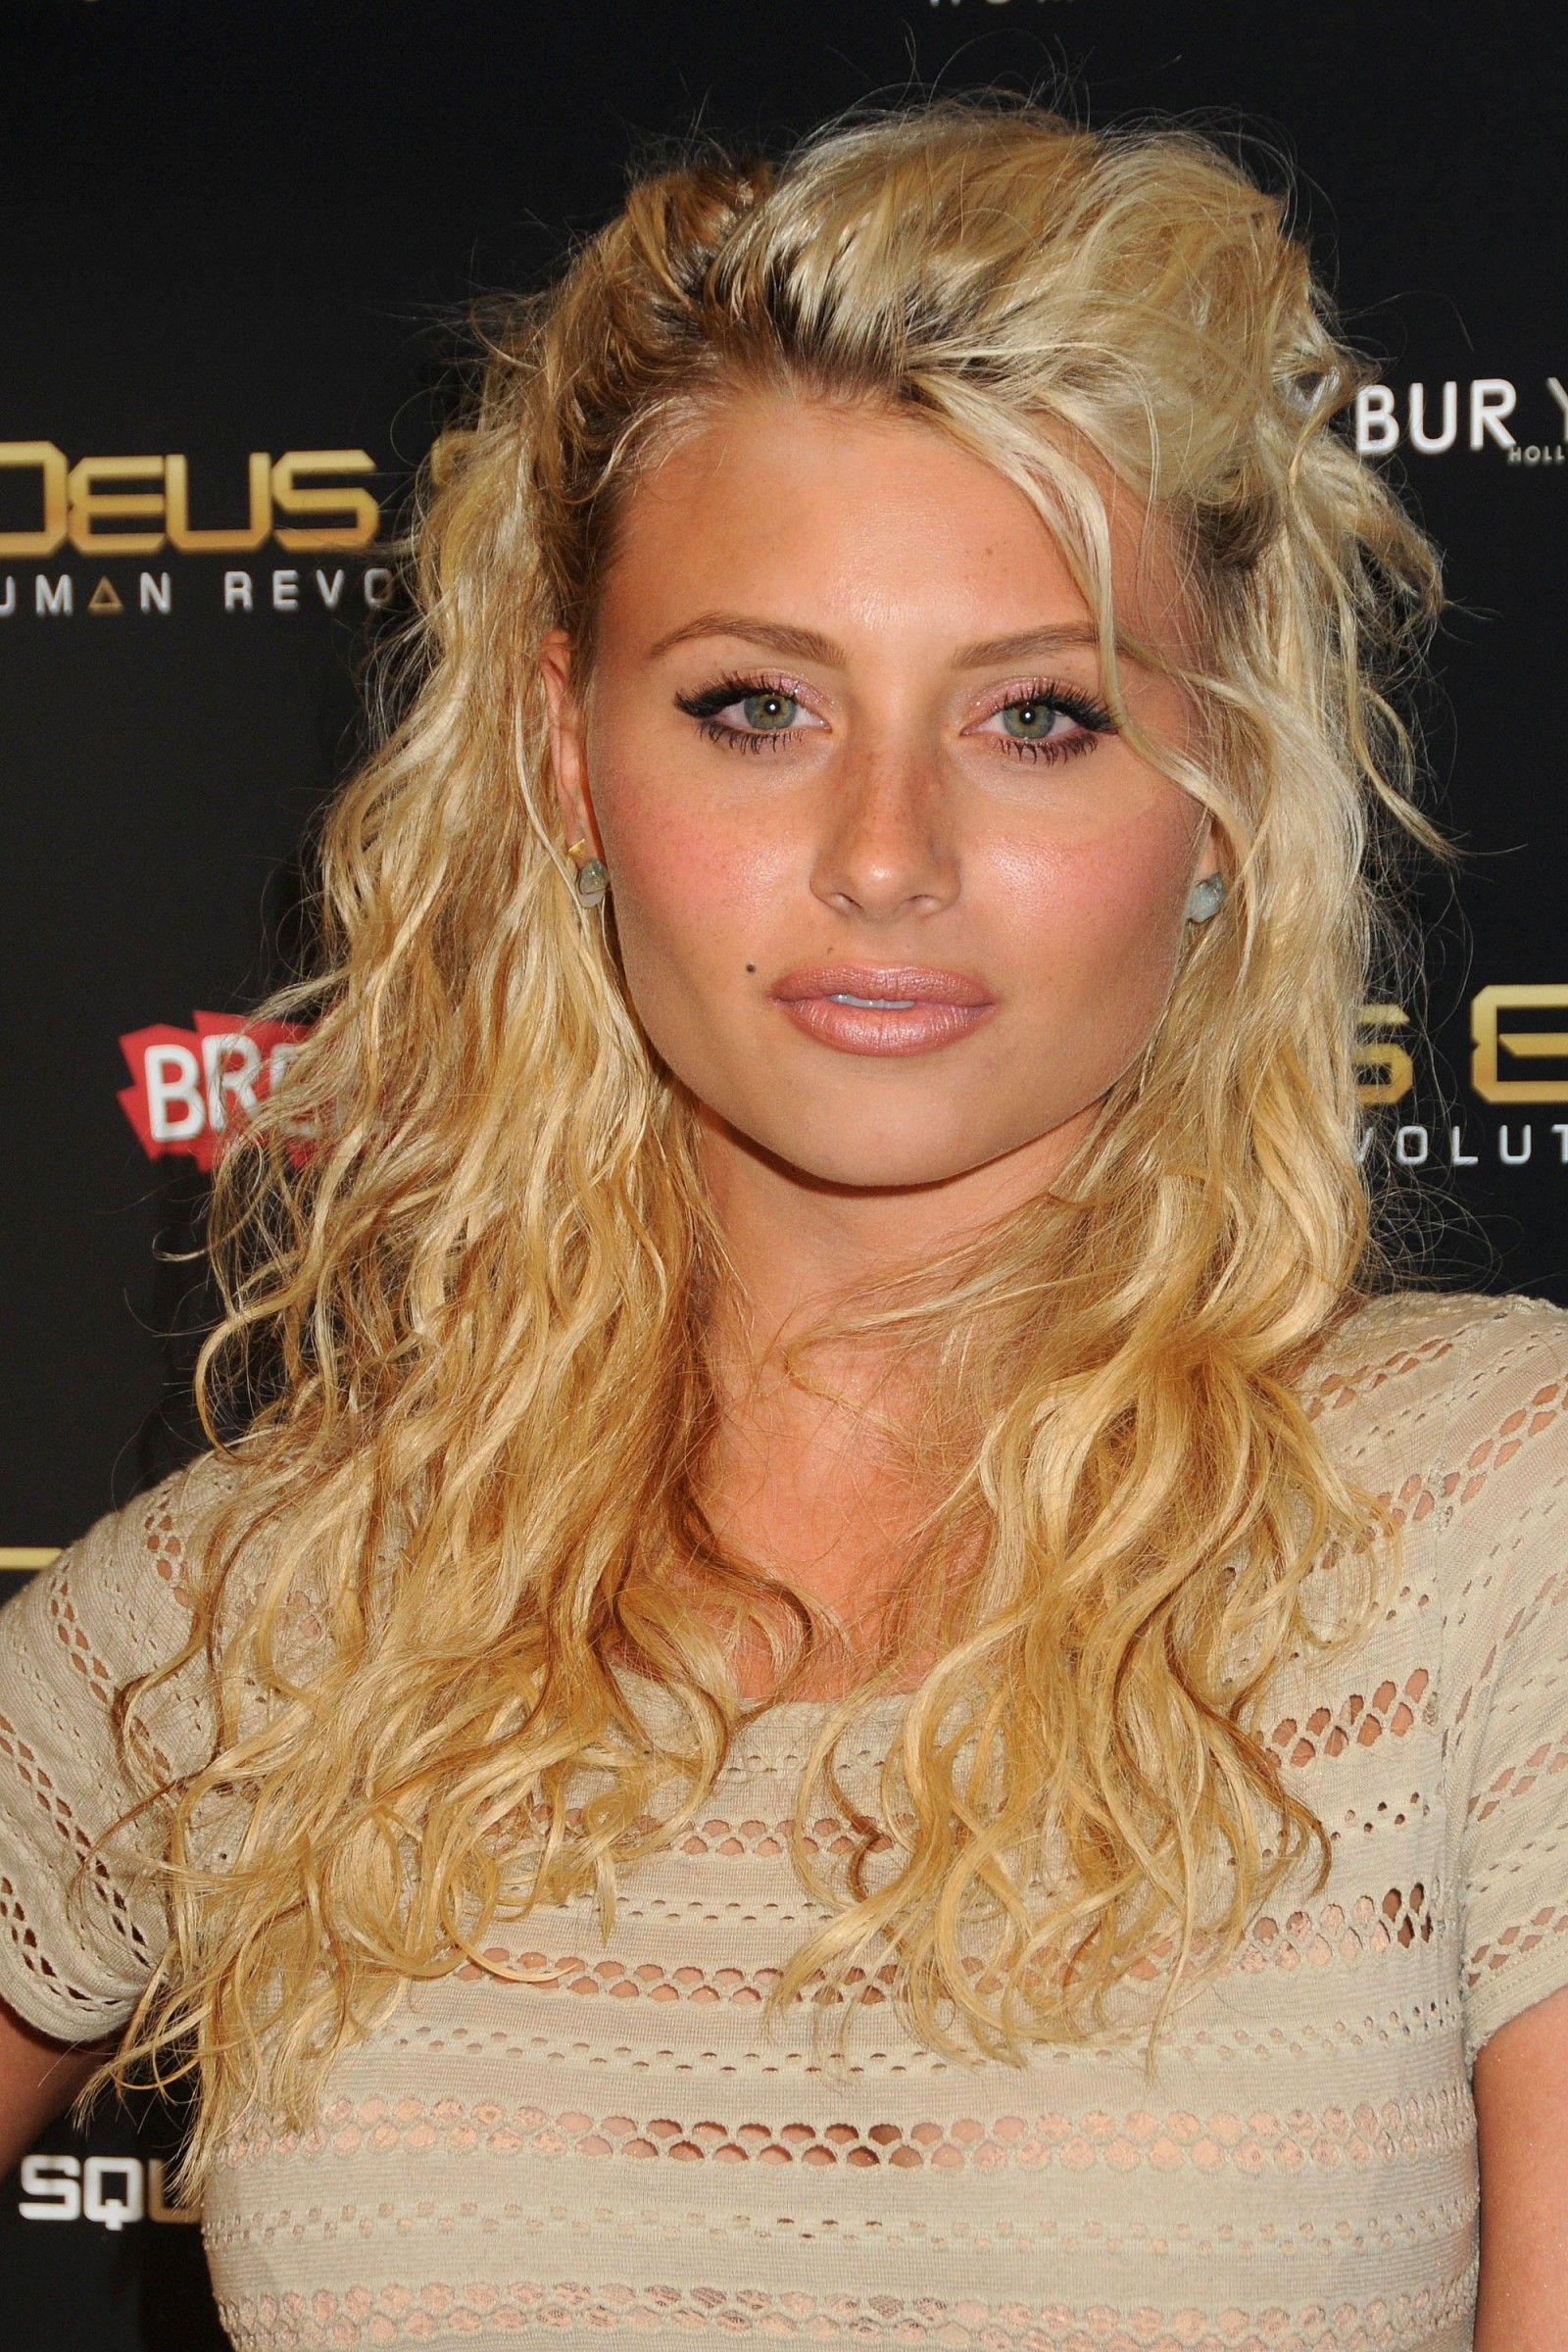 aly michalka brand new dayaly michalka interview, aly michalka brand new day, aly michalka tca 2017, aly michalka site, aly michalka 2016, aly michalka vk, aly michalka songs, aly michalka izombie, aly michalka fansite, aly michalka aj, aly michalka instagram, aly michalka gif tumblr, aly michalka wikipedia, aly michalka someone to fall back on, aly michalka surgery, aly michalka wild horses